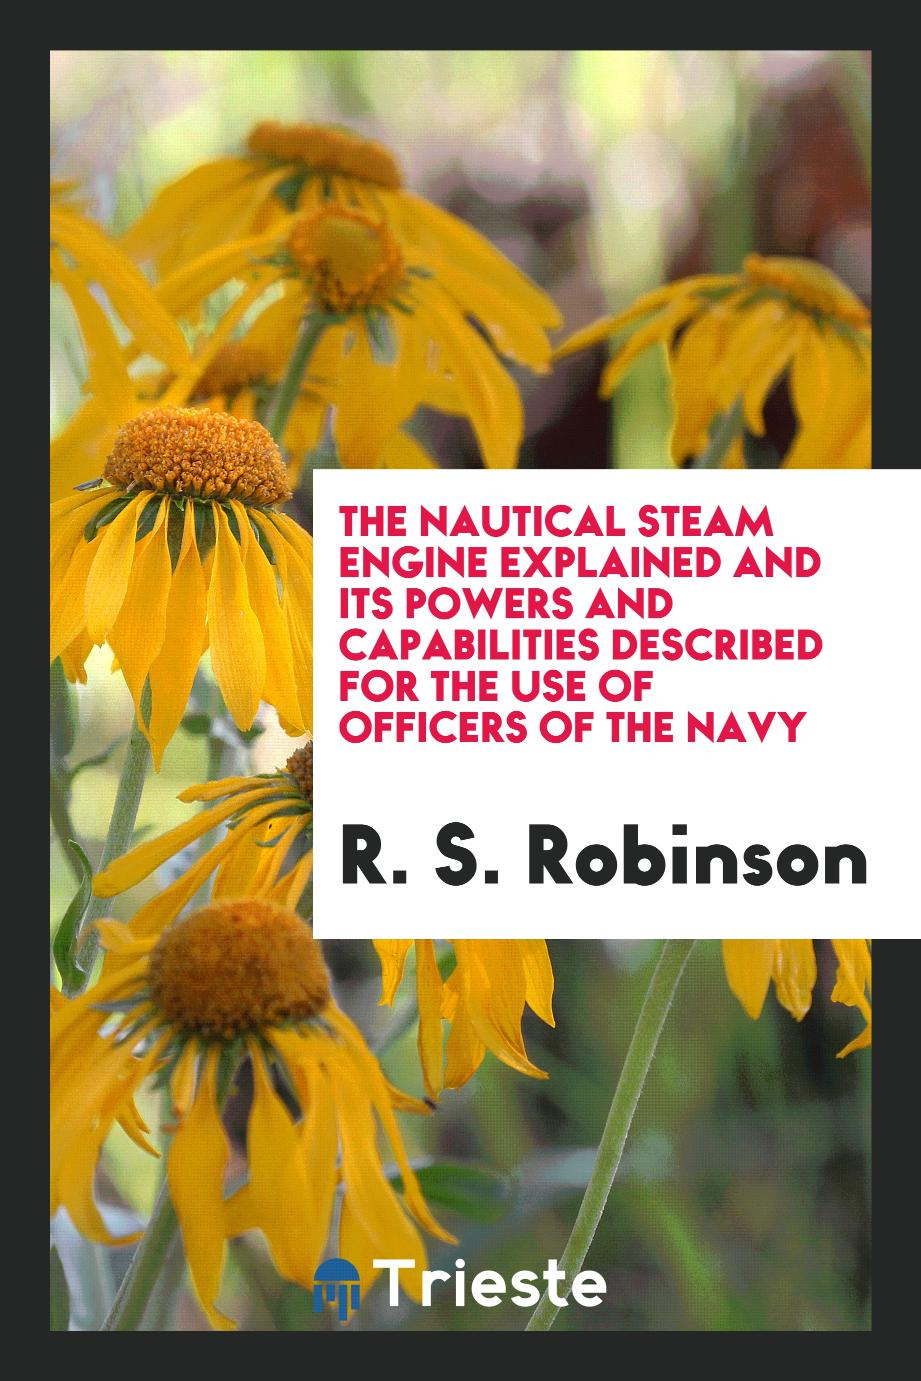 The Nautical Steam Engine Explained and Its Powers and Capabilities Described for the Use of Officers of the Navy